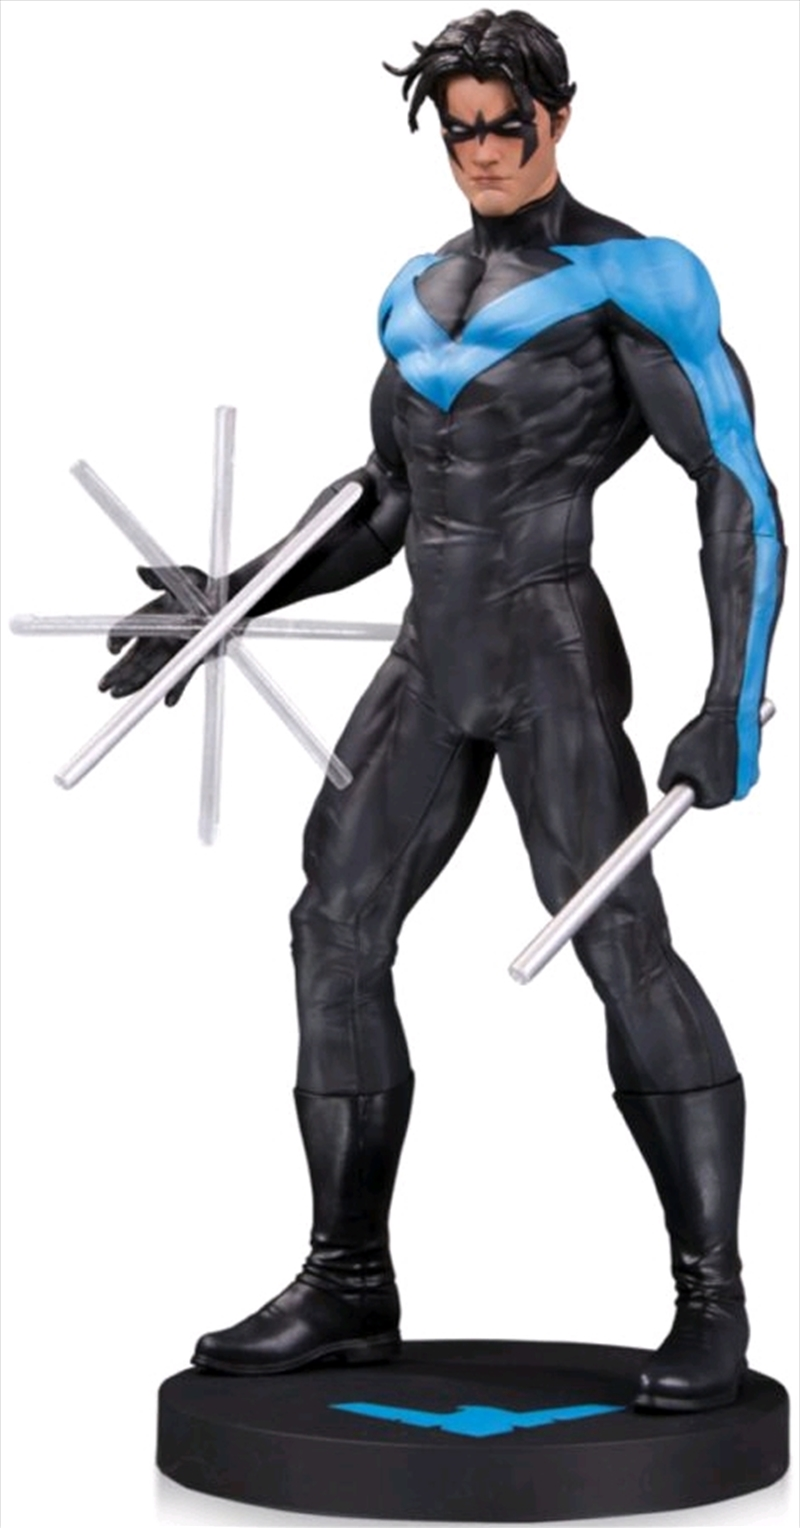 Batman - Nightwing by Jim Lee Designer Mini Statue | Merchandise